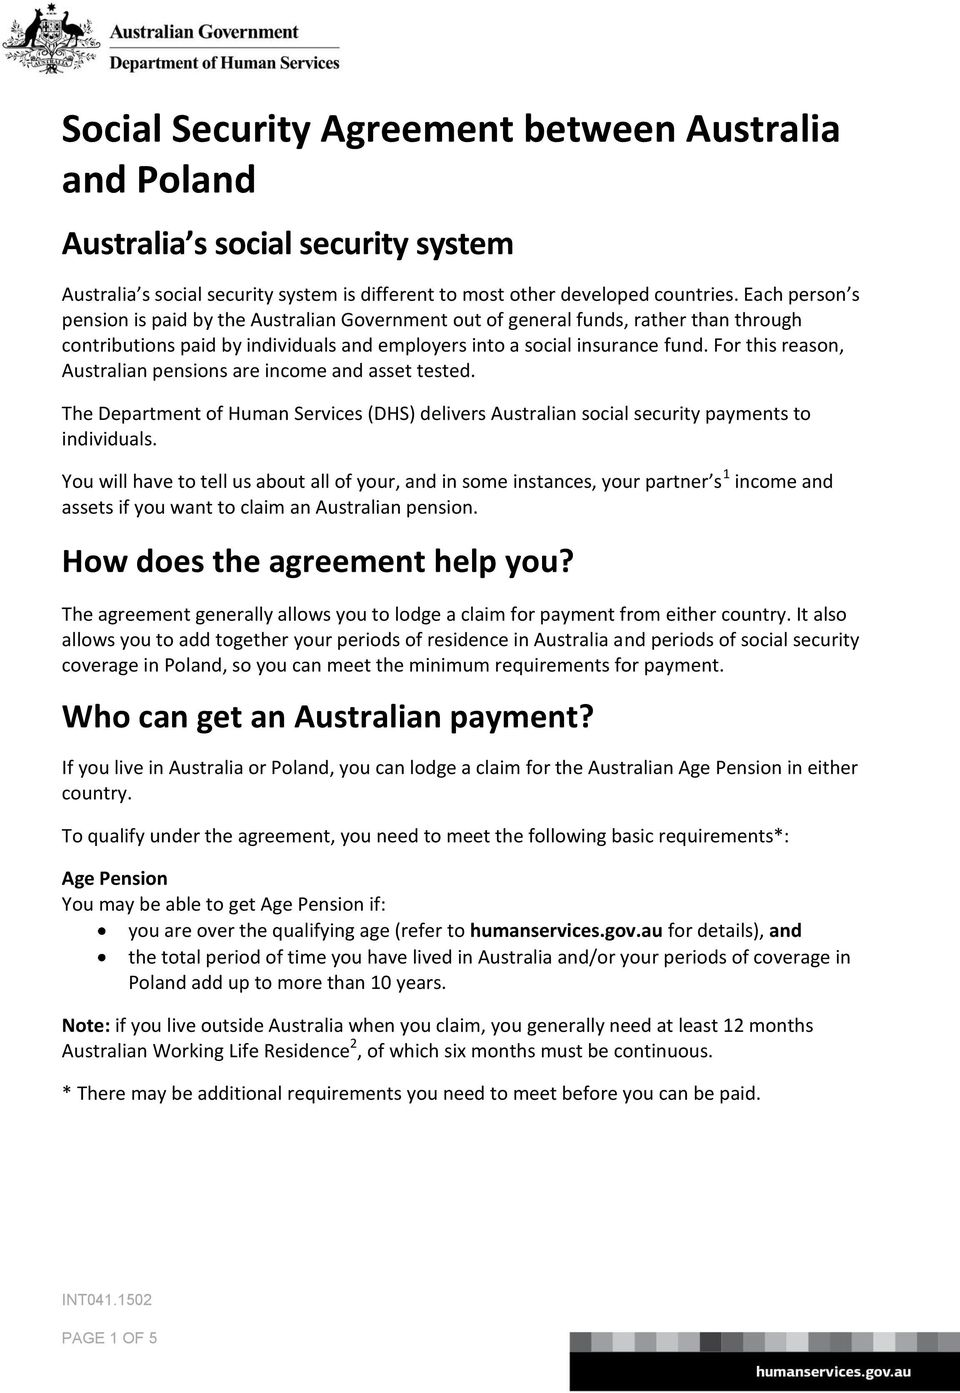 For this reason, Australian pensions are income and asset tested. The (DHS) delivers Australian social security payments to individuals.